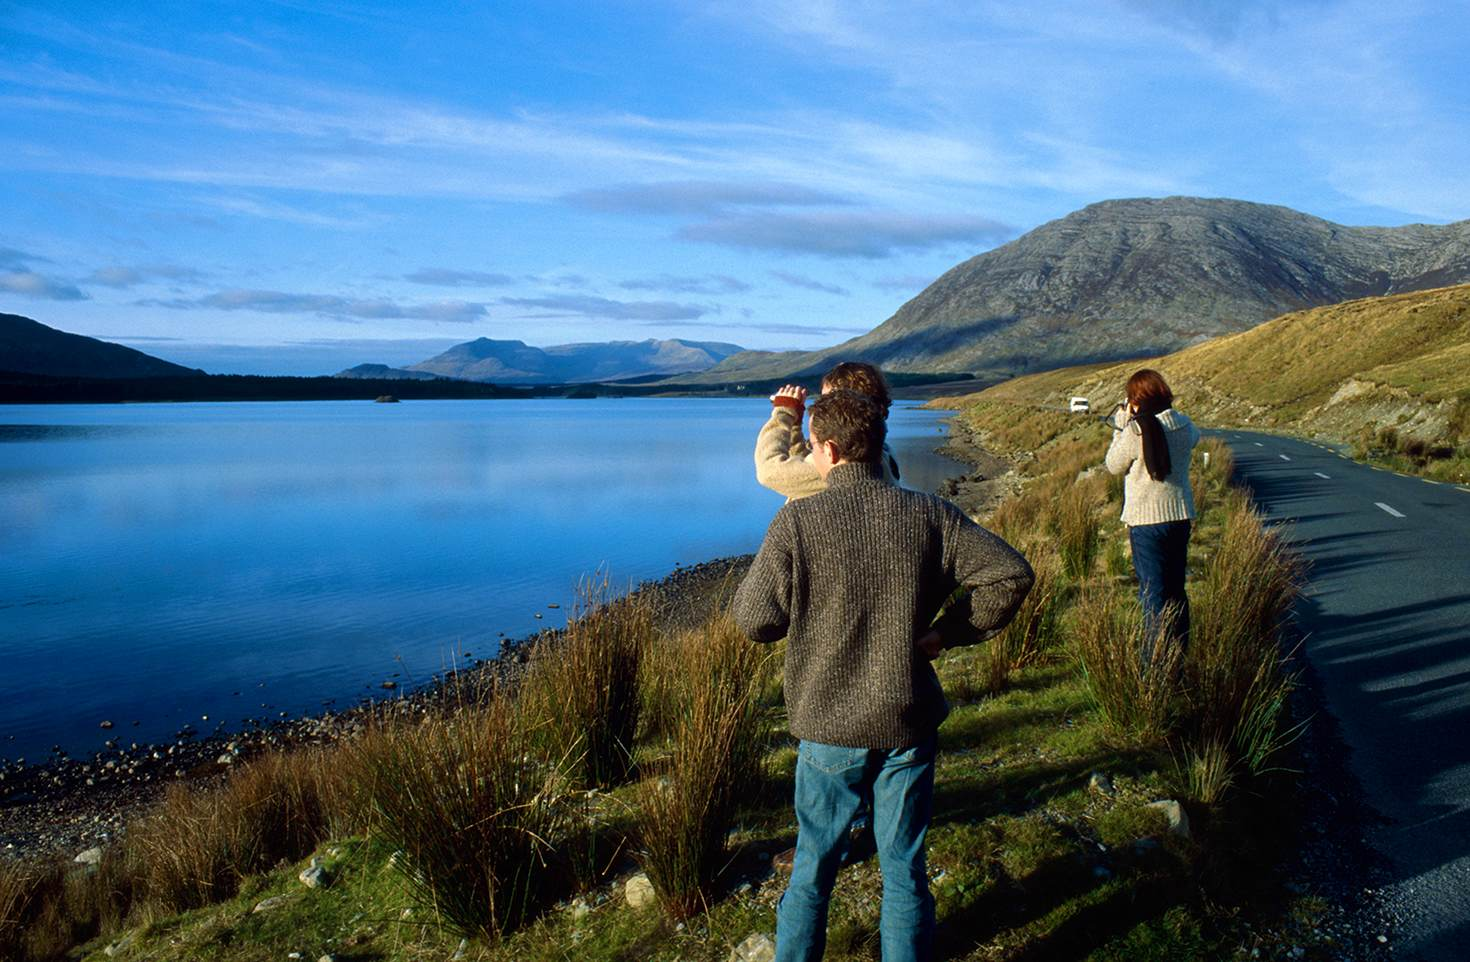 Travellers gaze at the astonishing scenery of Connemara